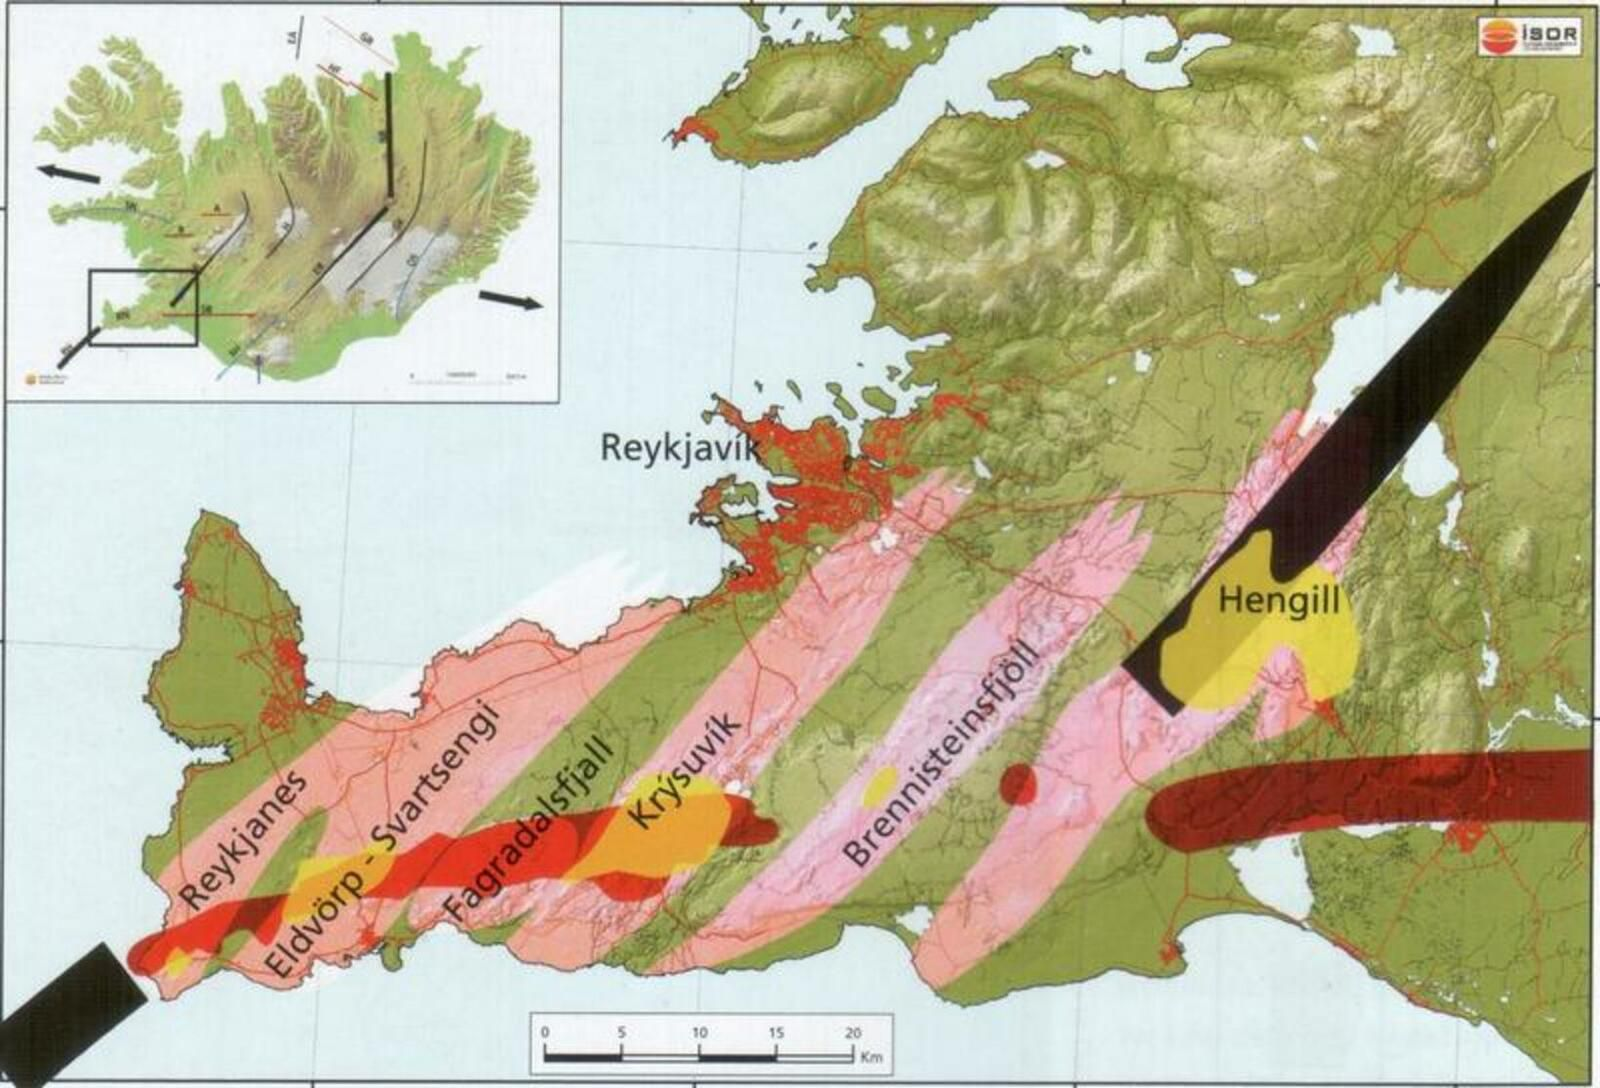 Reykjanes Peninsula - the different volcanic systems ... future eruptions may affect systems east or west of Fagradalsfjall - Doc. Web science via mbls